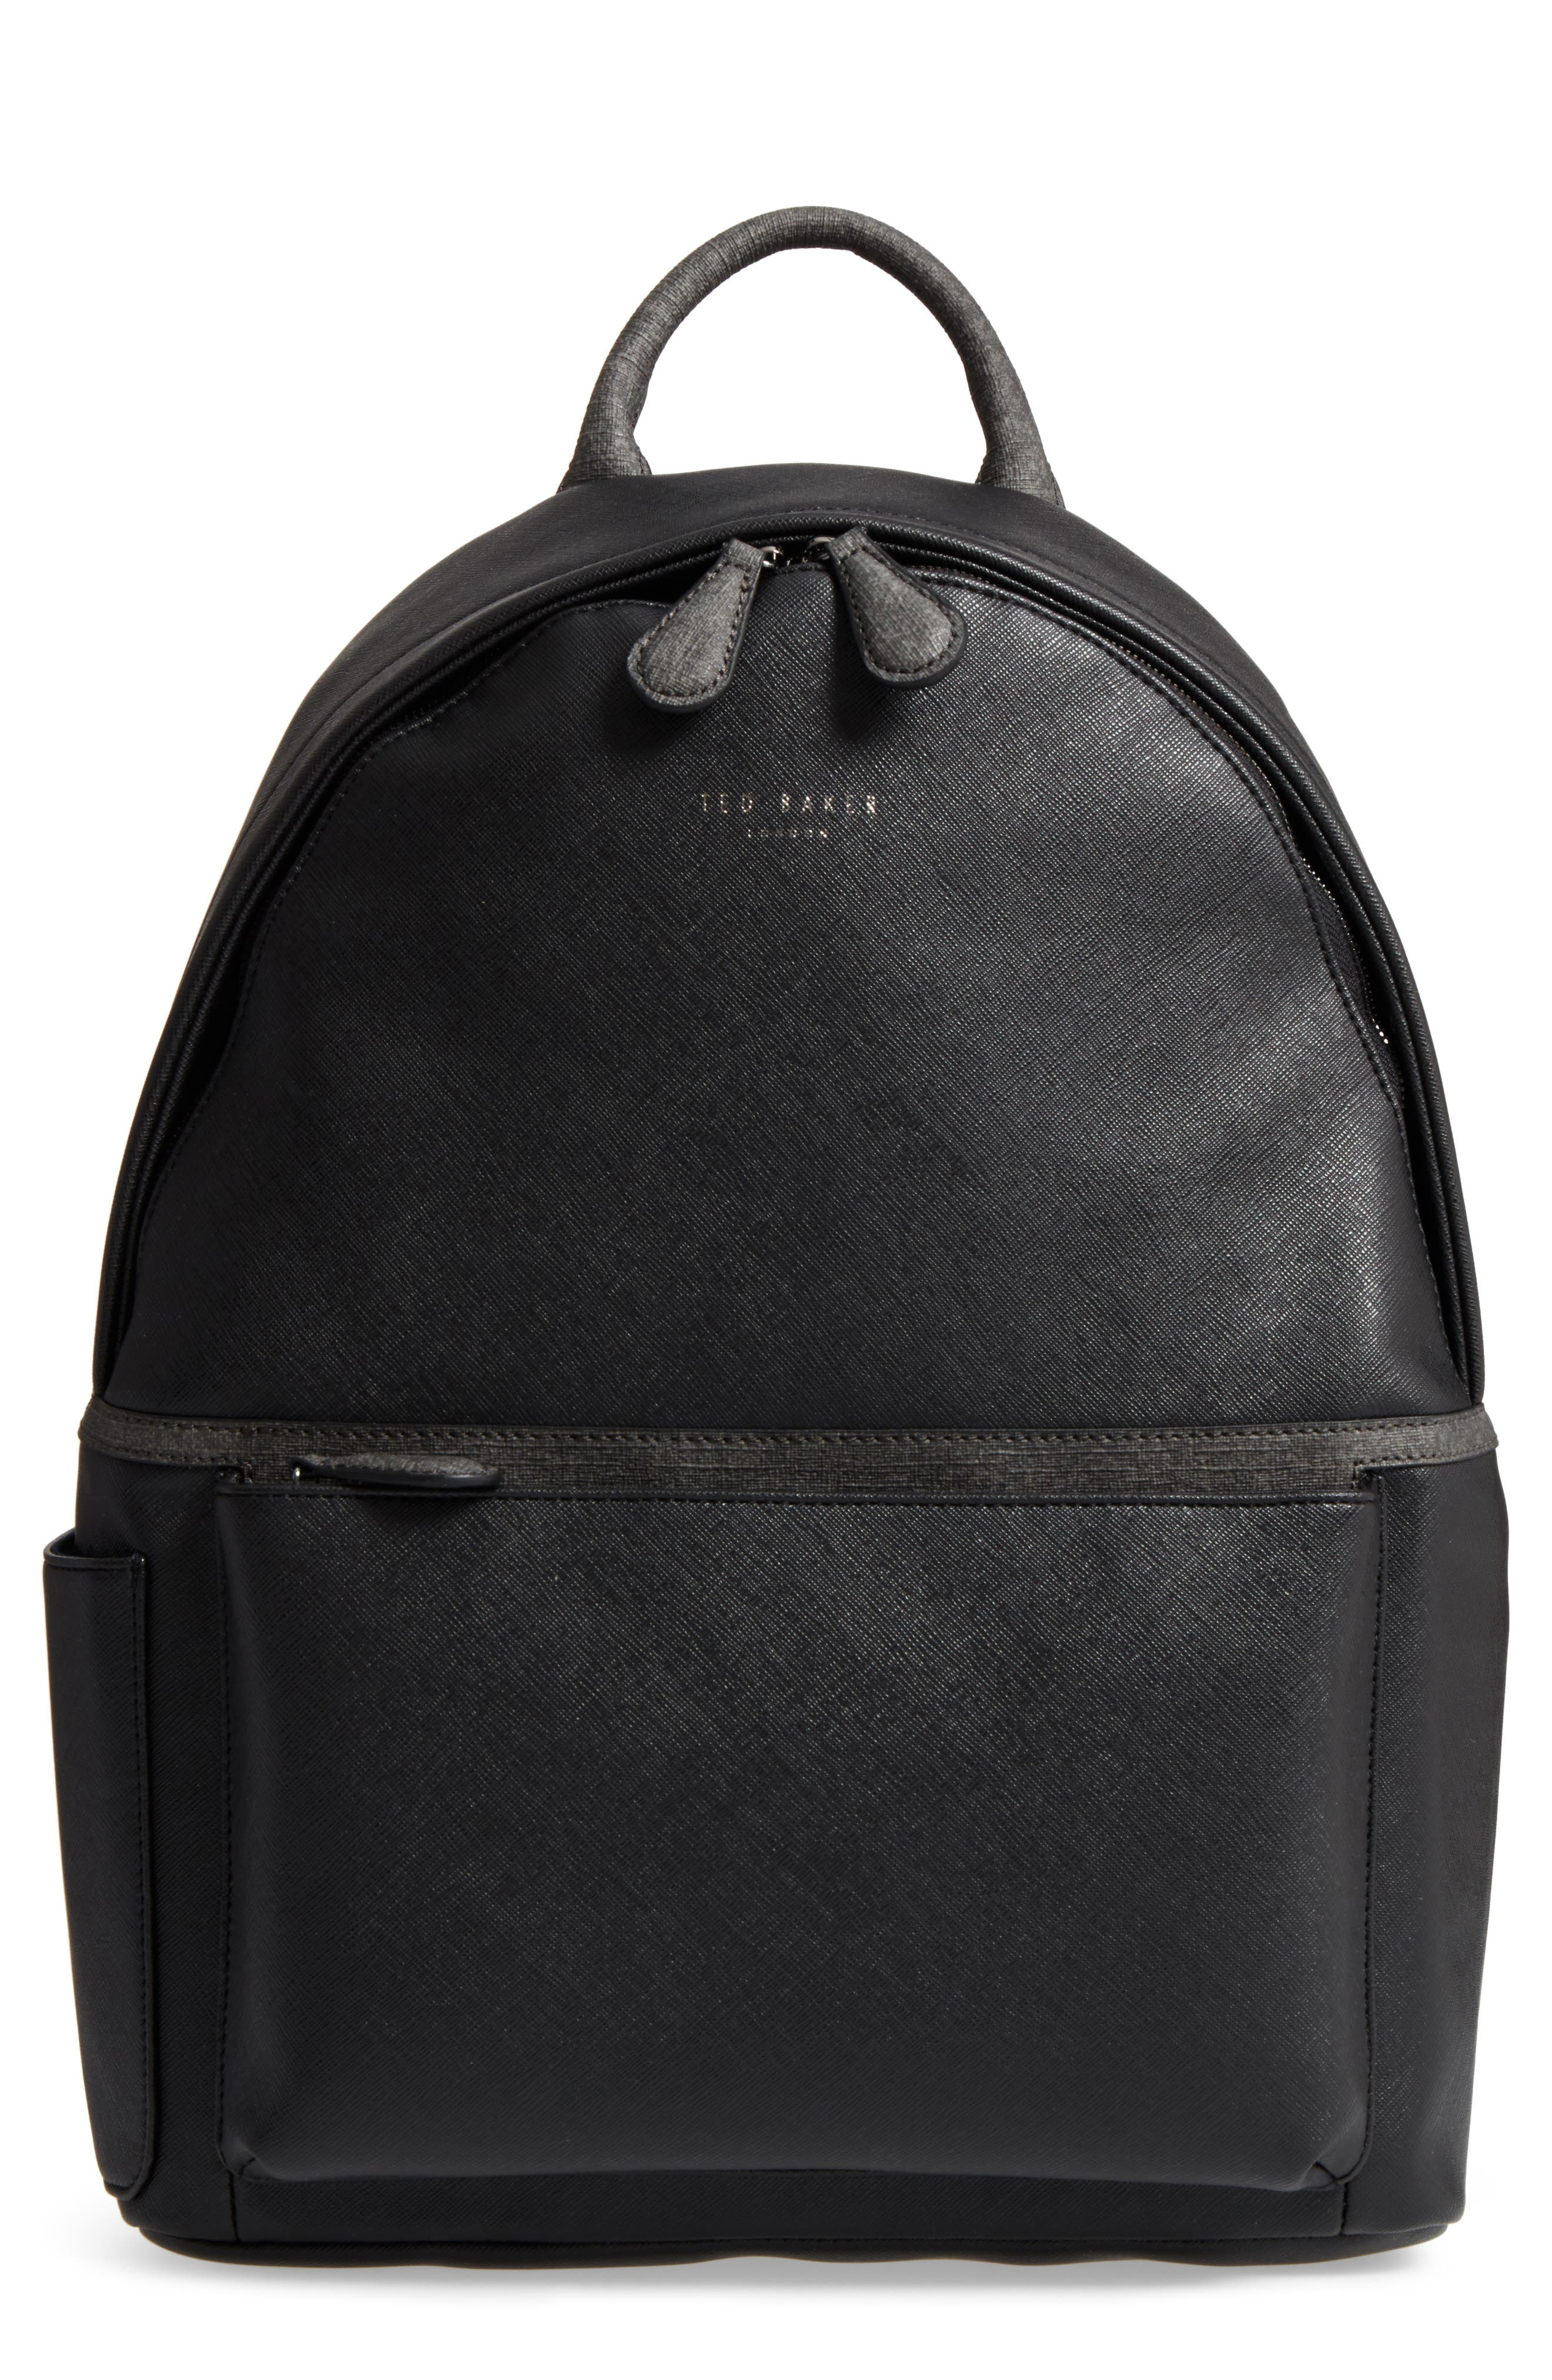 Fangs Backpack,                         Main,                         color, 001